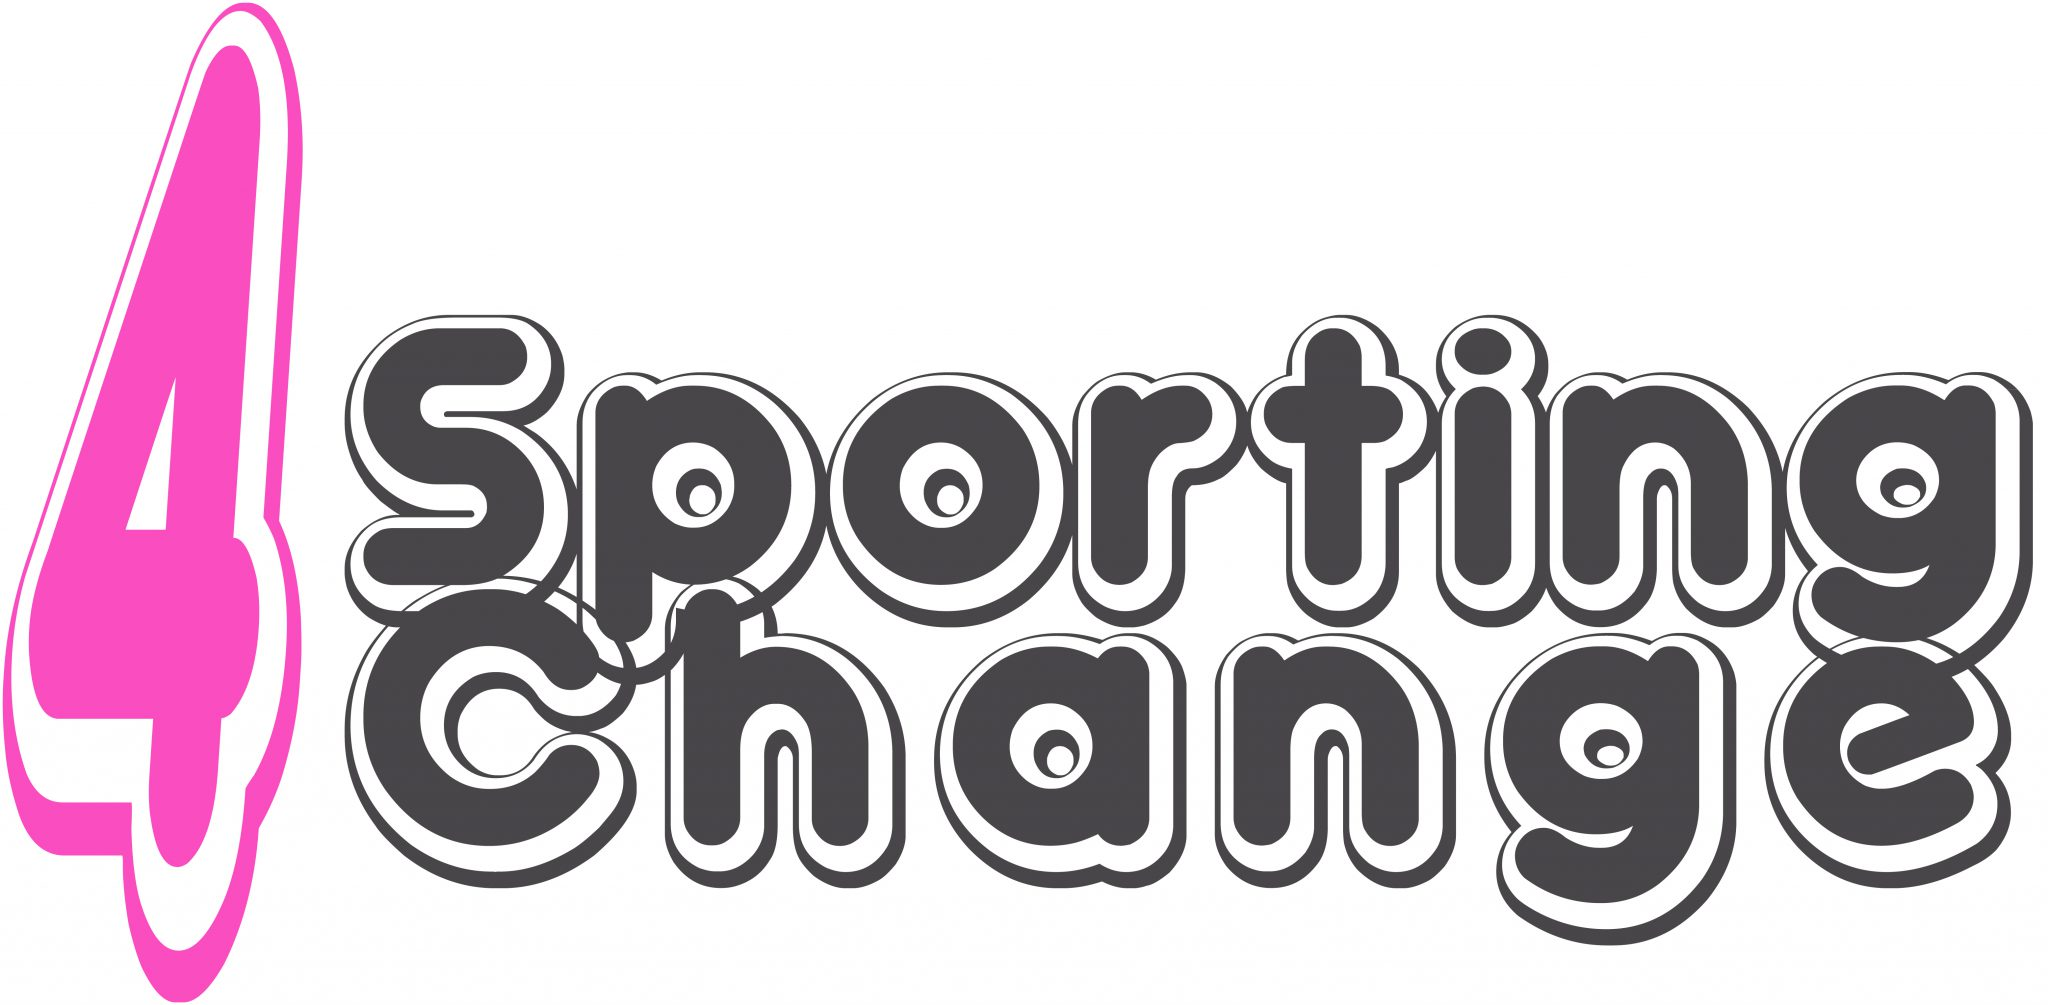 logo.sporting.4.change.ajcm